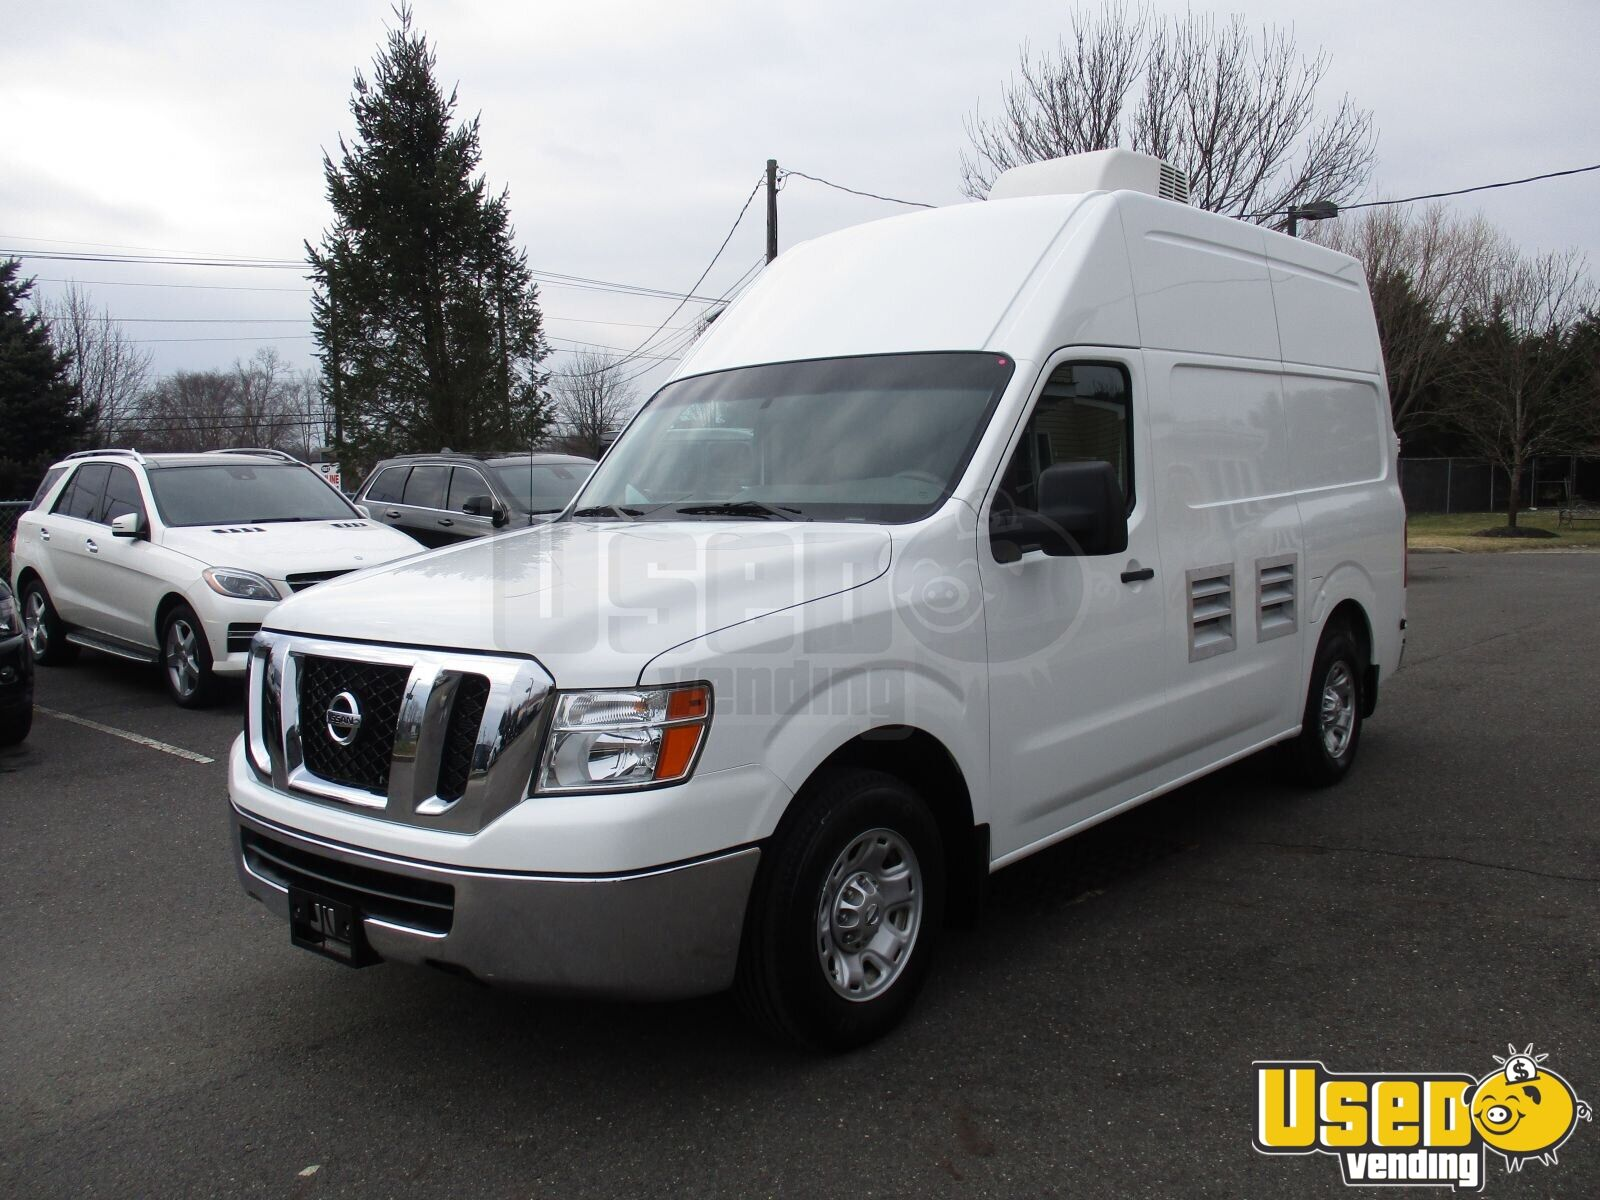 2013 Nissan Nv2500 All-purpose Food Truck Air Conditioning New Jersey Gas Engine for Sale - 2